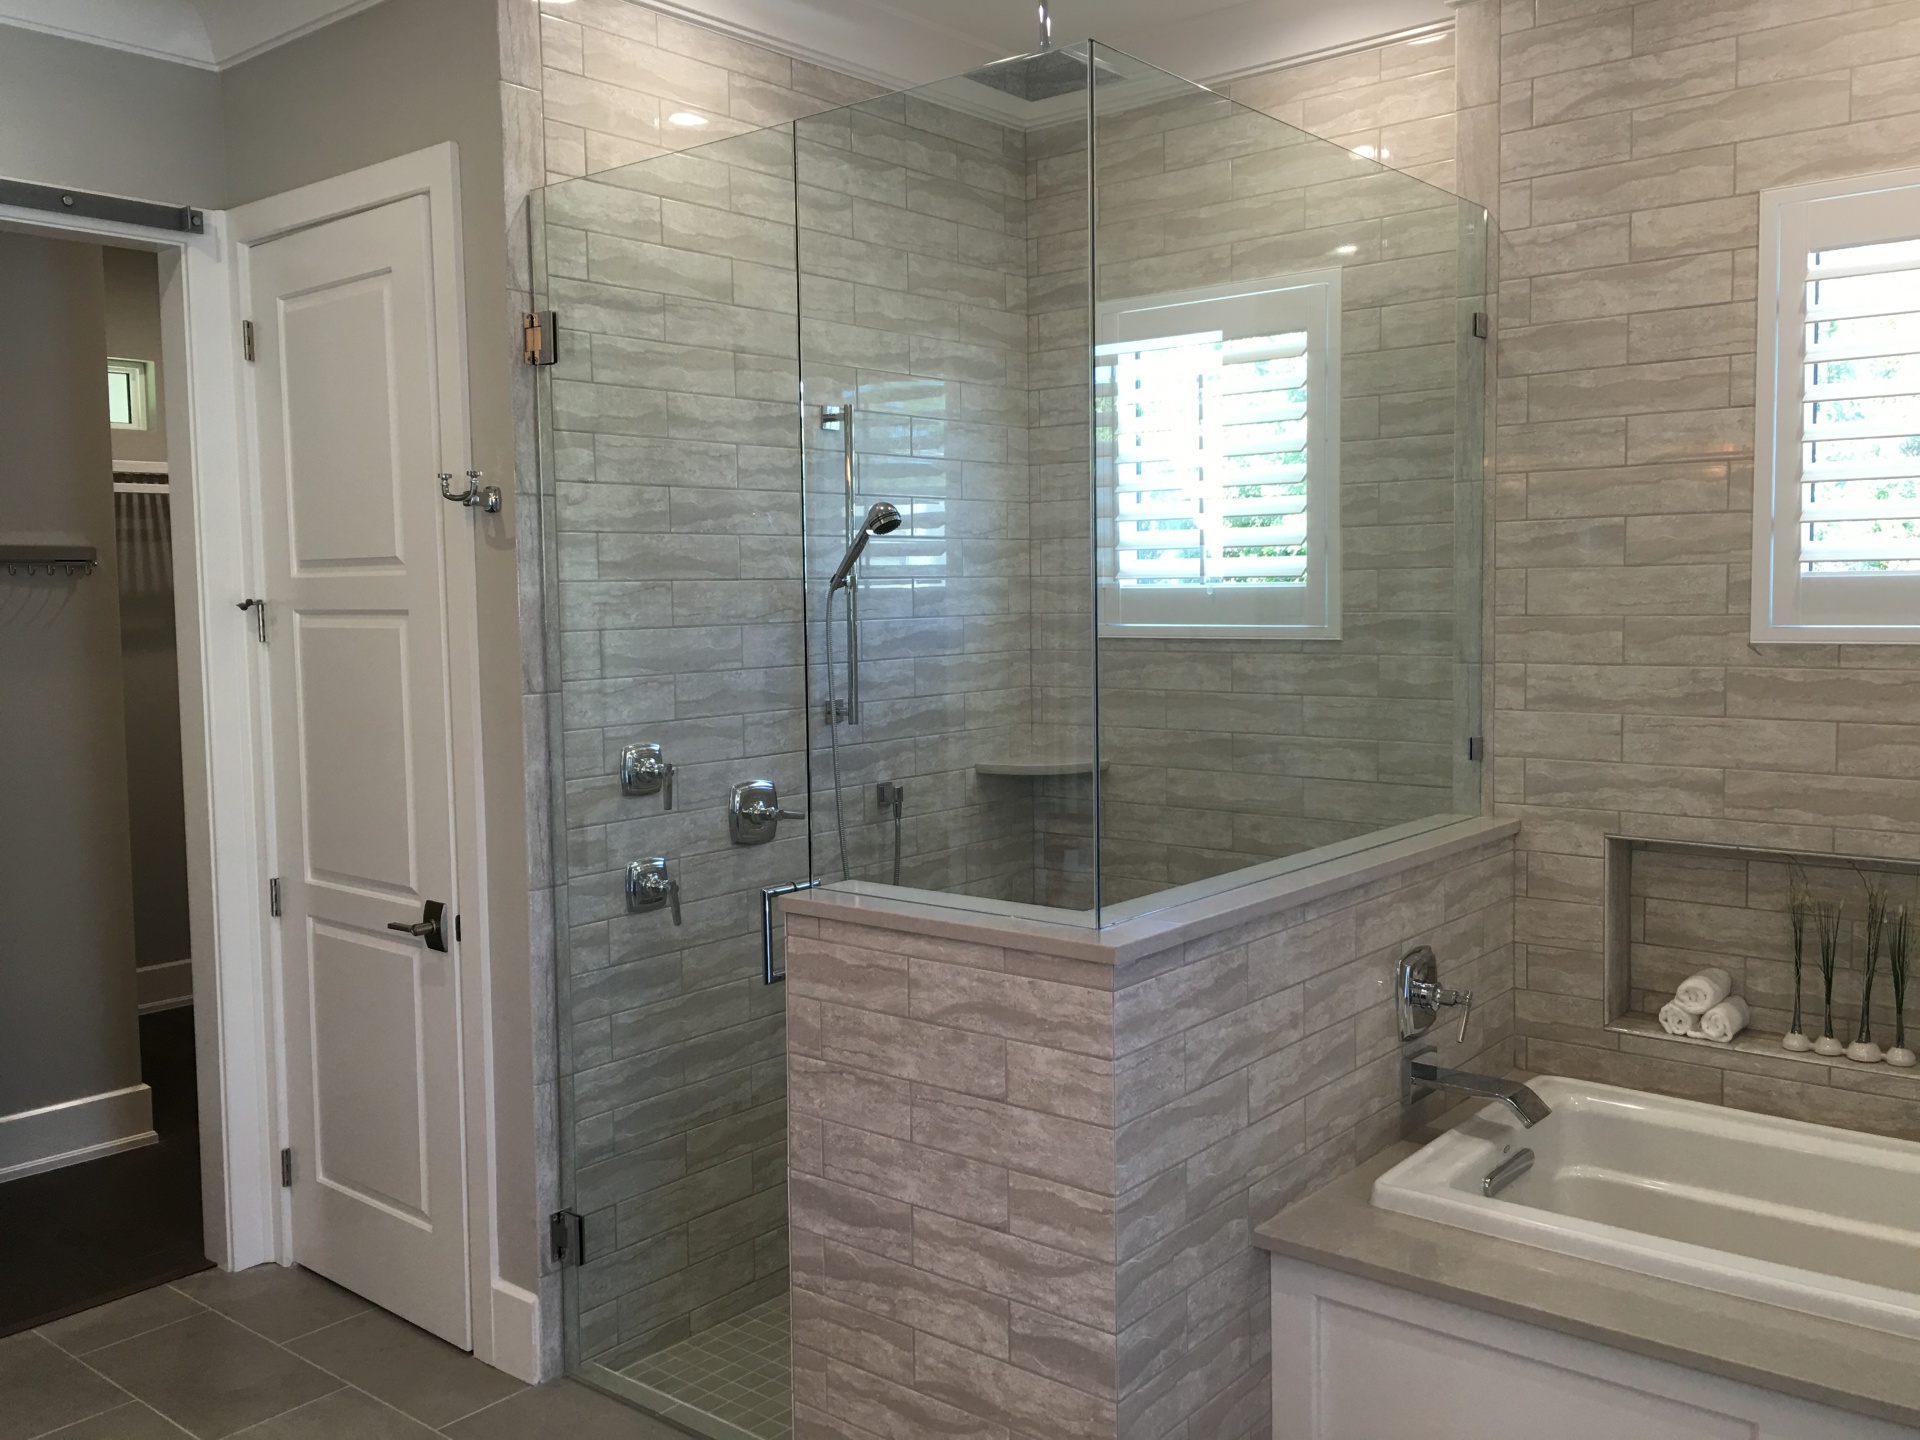 CUSTOM MIRRORS & SHOWERS